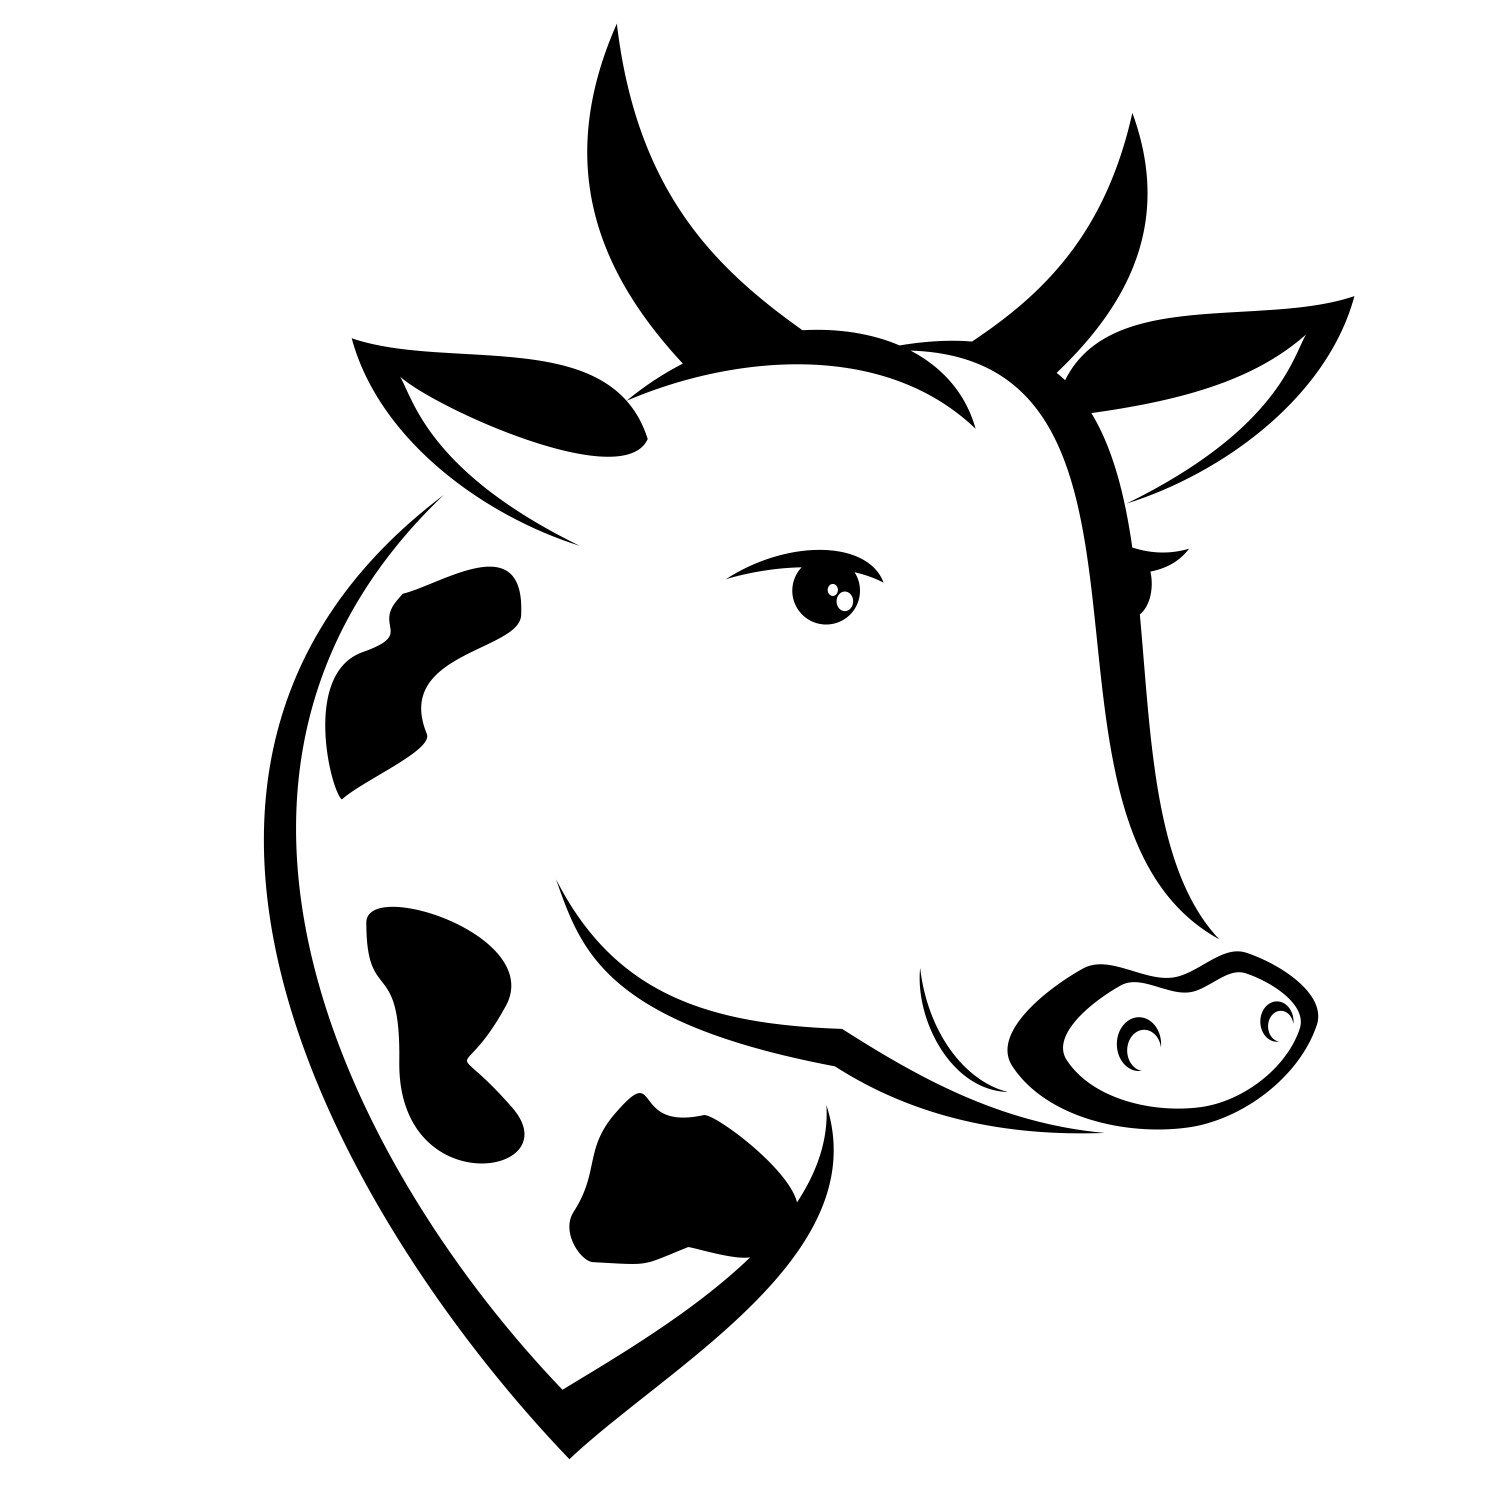 Cow clip art logo. Black head silhouette at